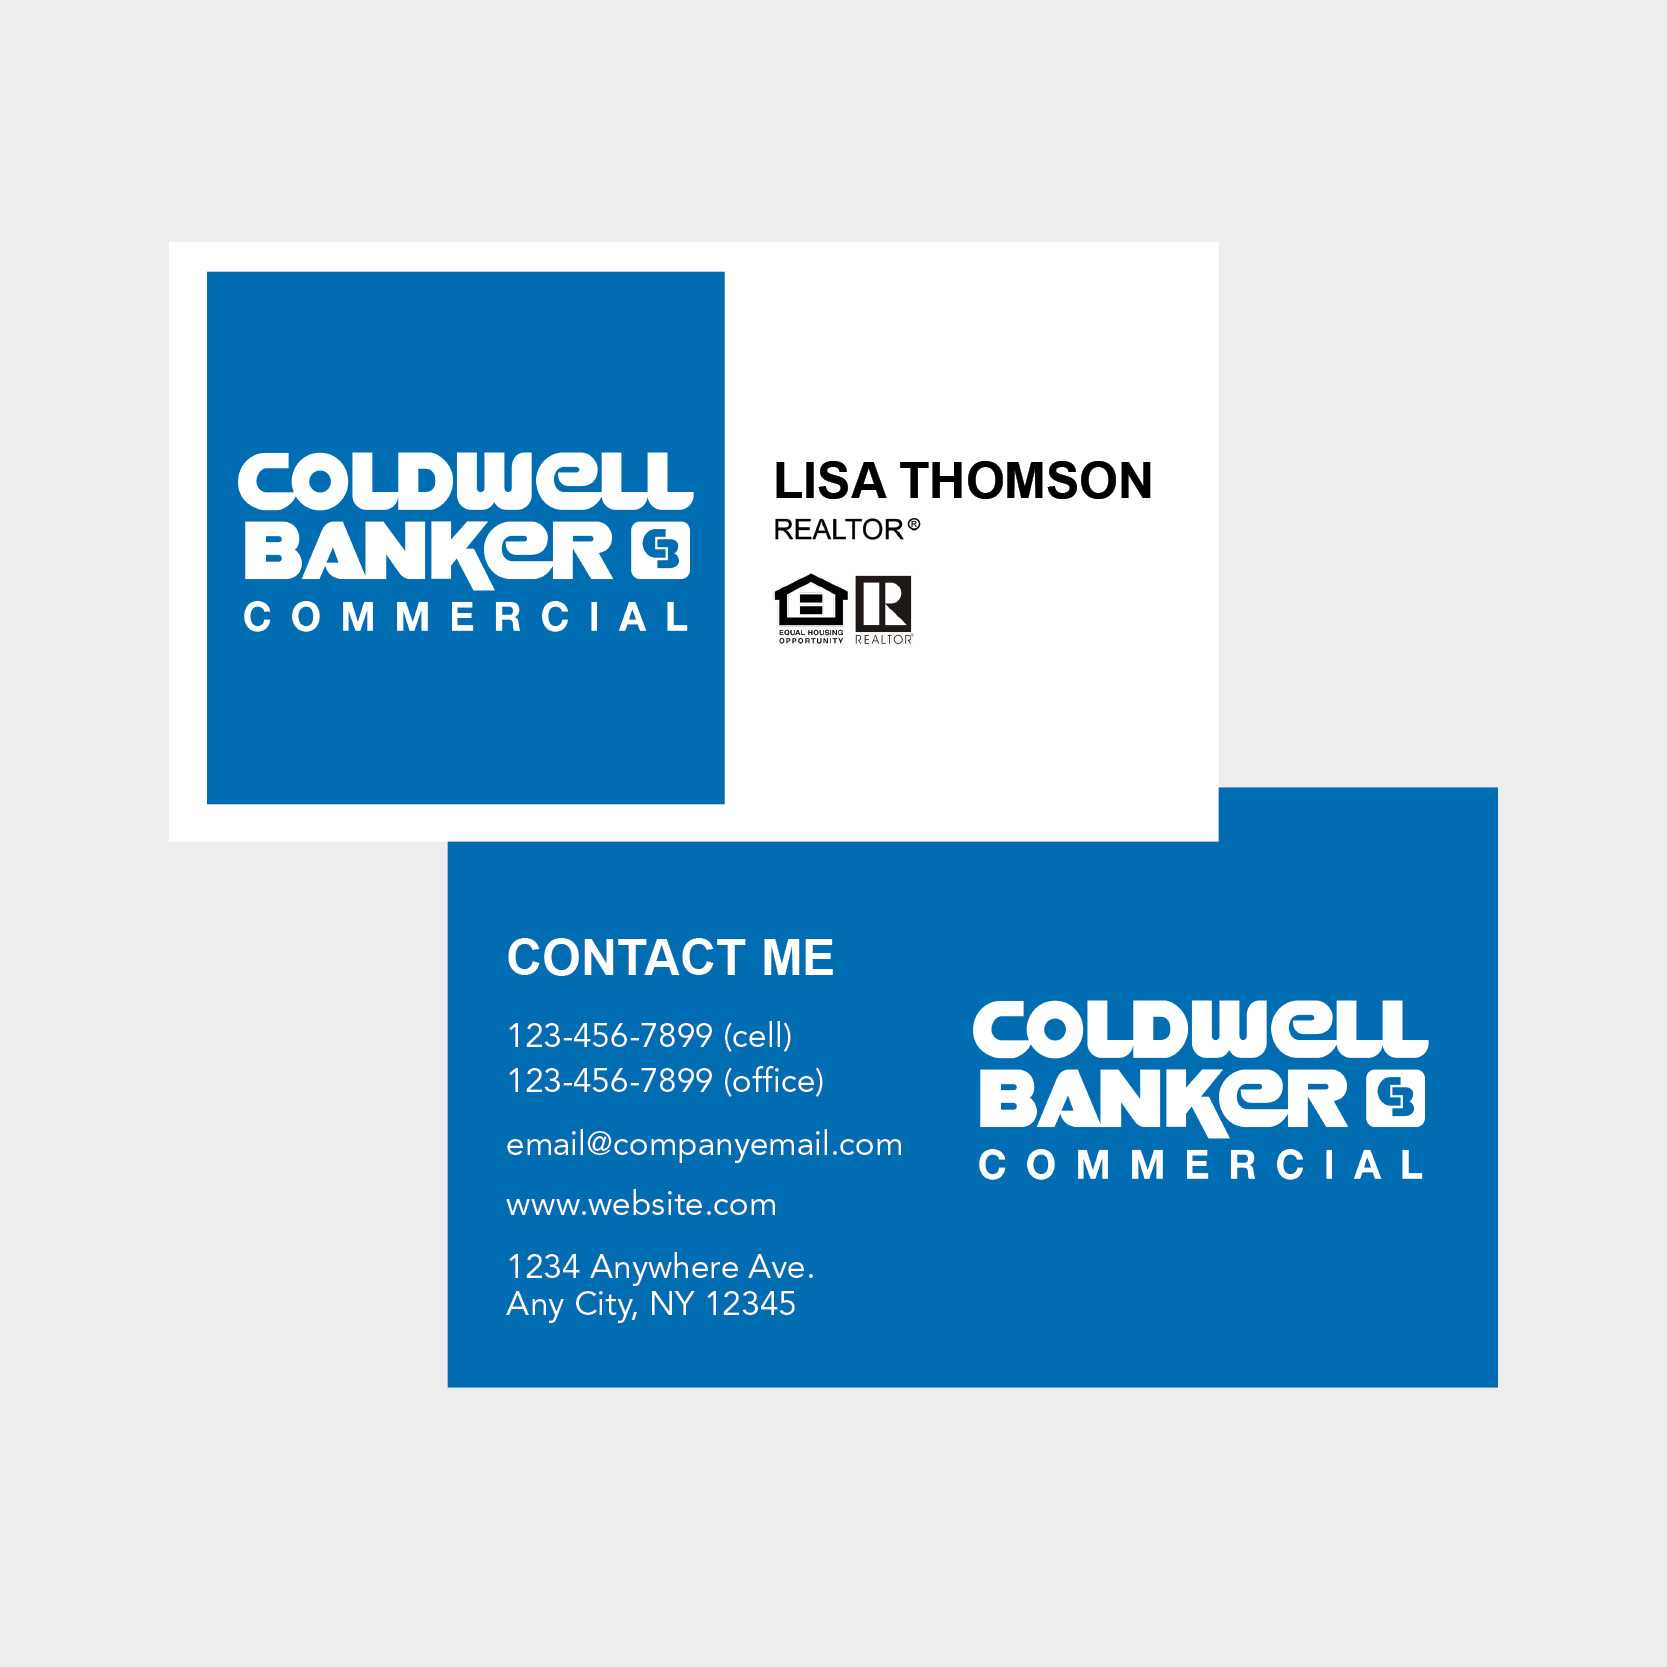 Coldwell Banker Business Card Throughout Coldwell Banker Business Card Template